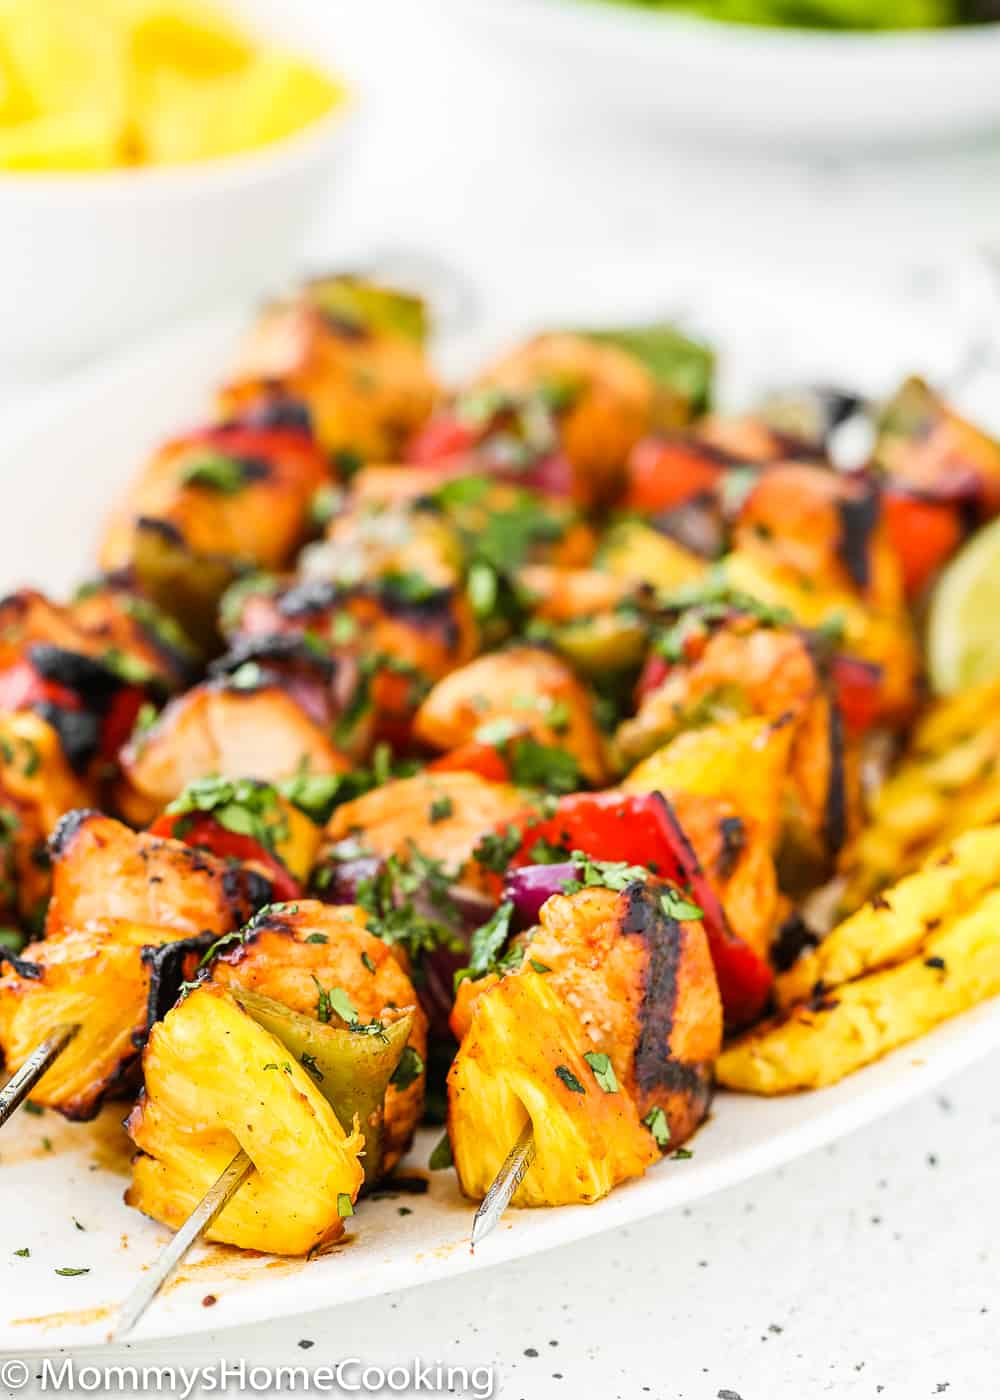 Easy Grilled Hawaiian Chicken Skewers in a white plate with lemon wedges and grilled pineapple close up